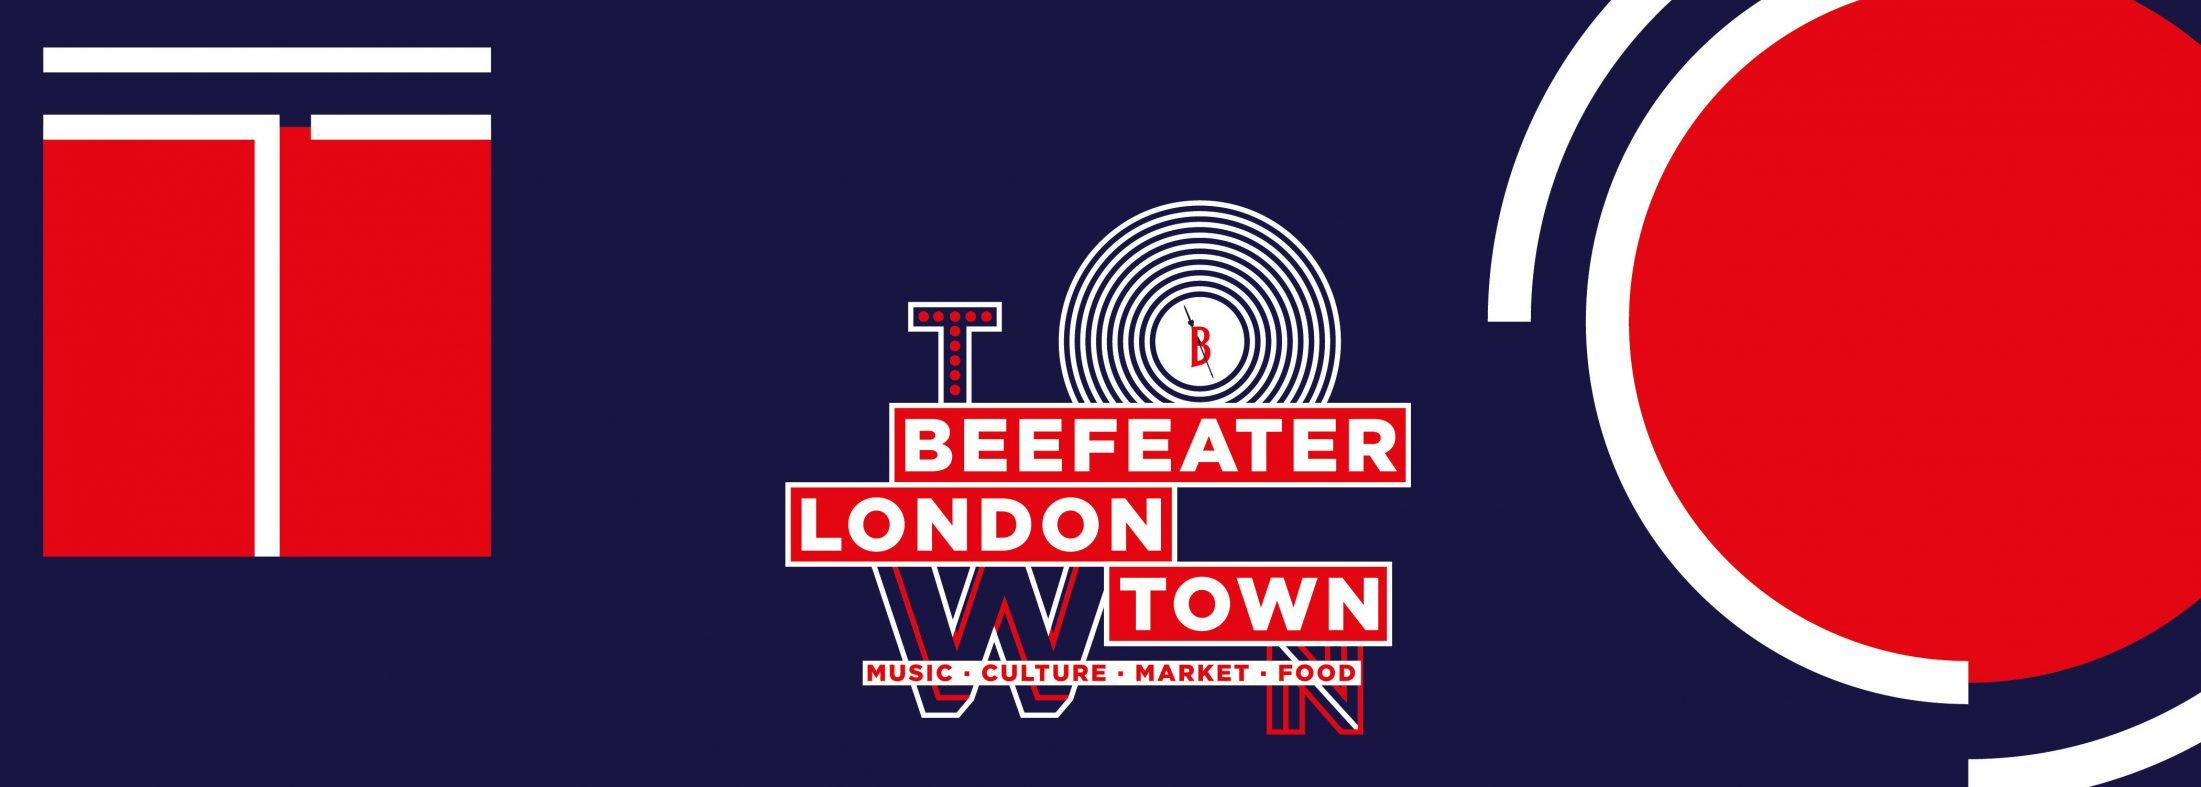 Beefeater London Town